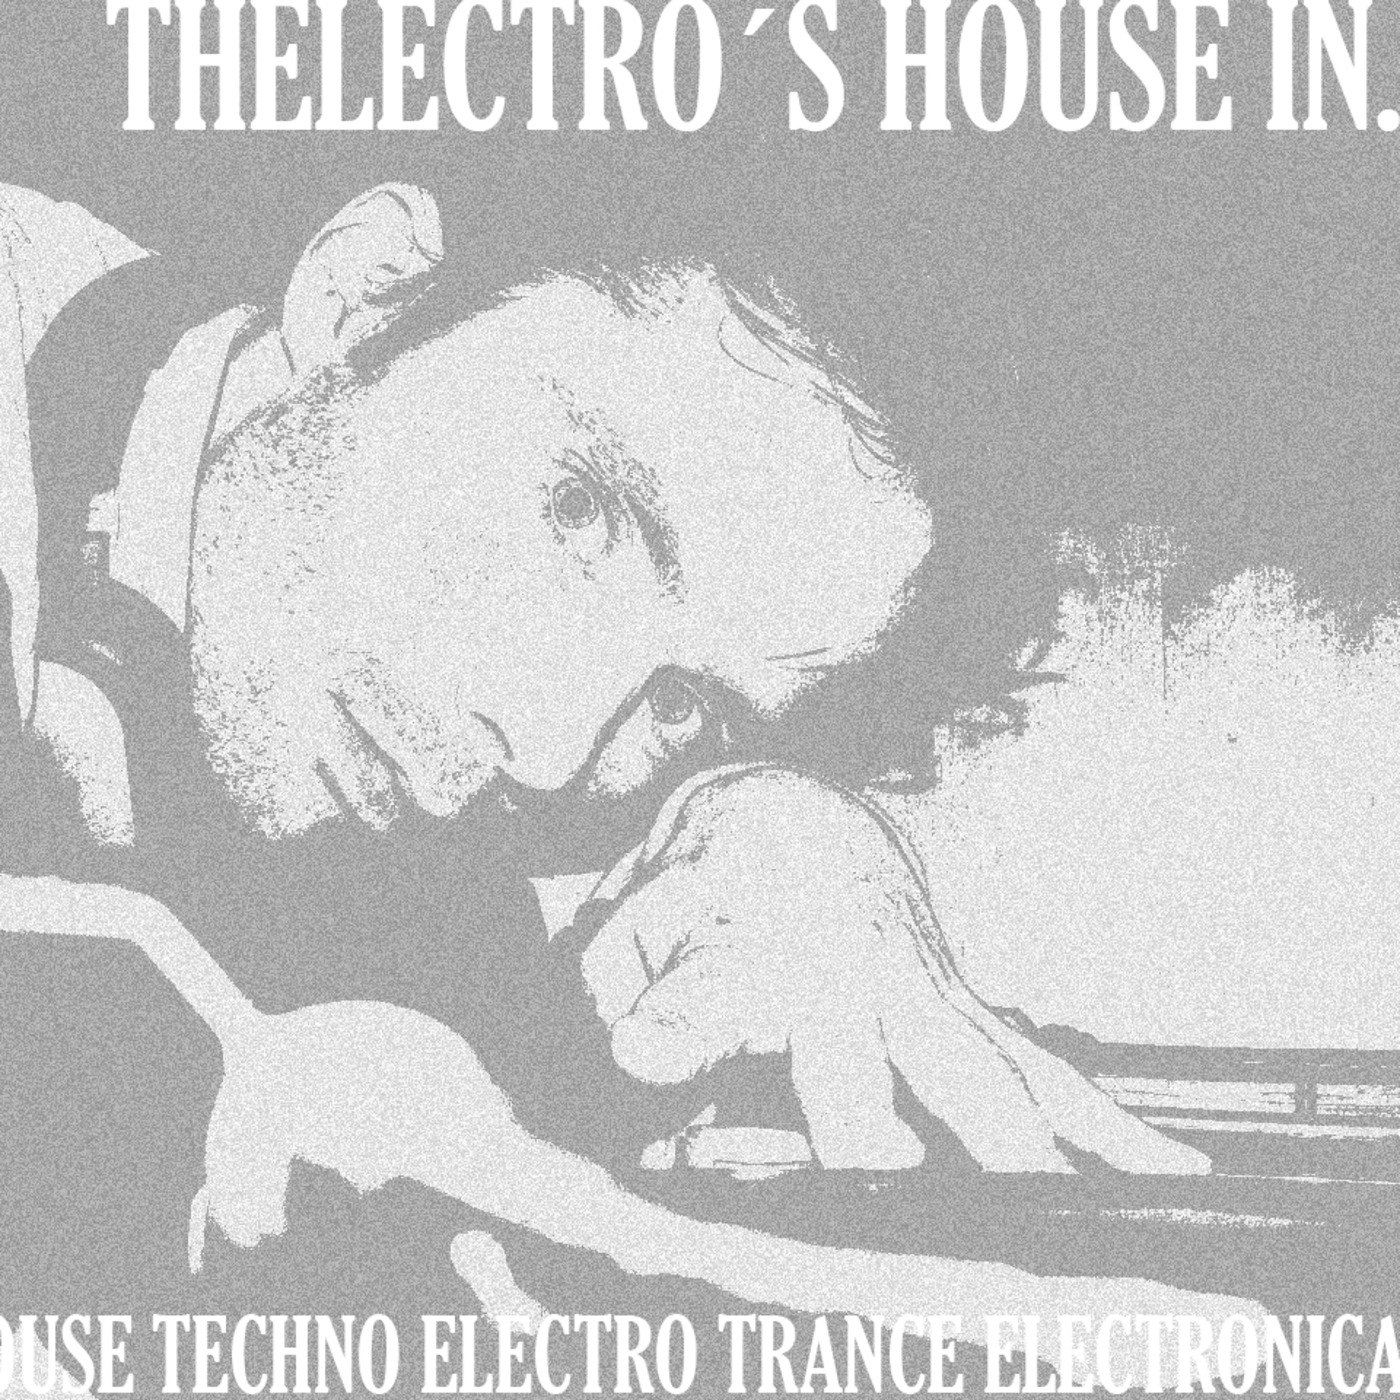 Thelectro's House In,,